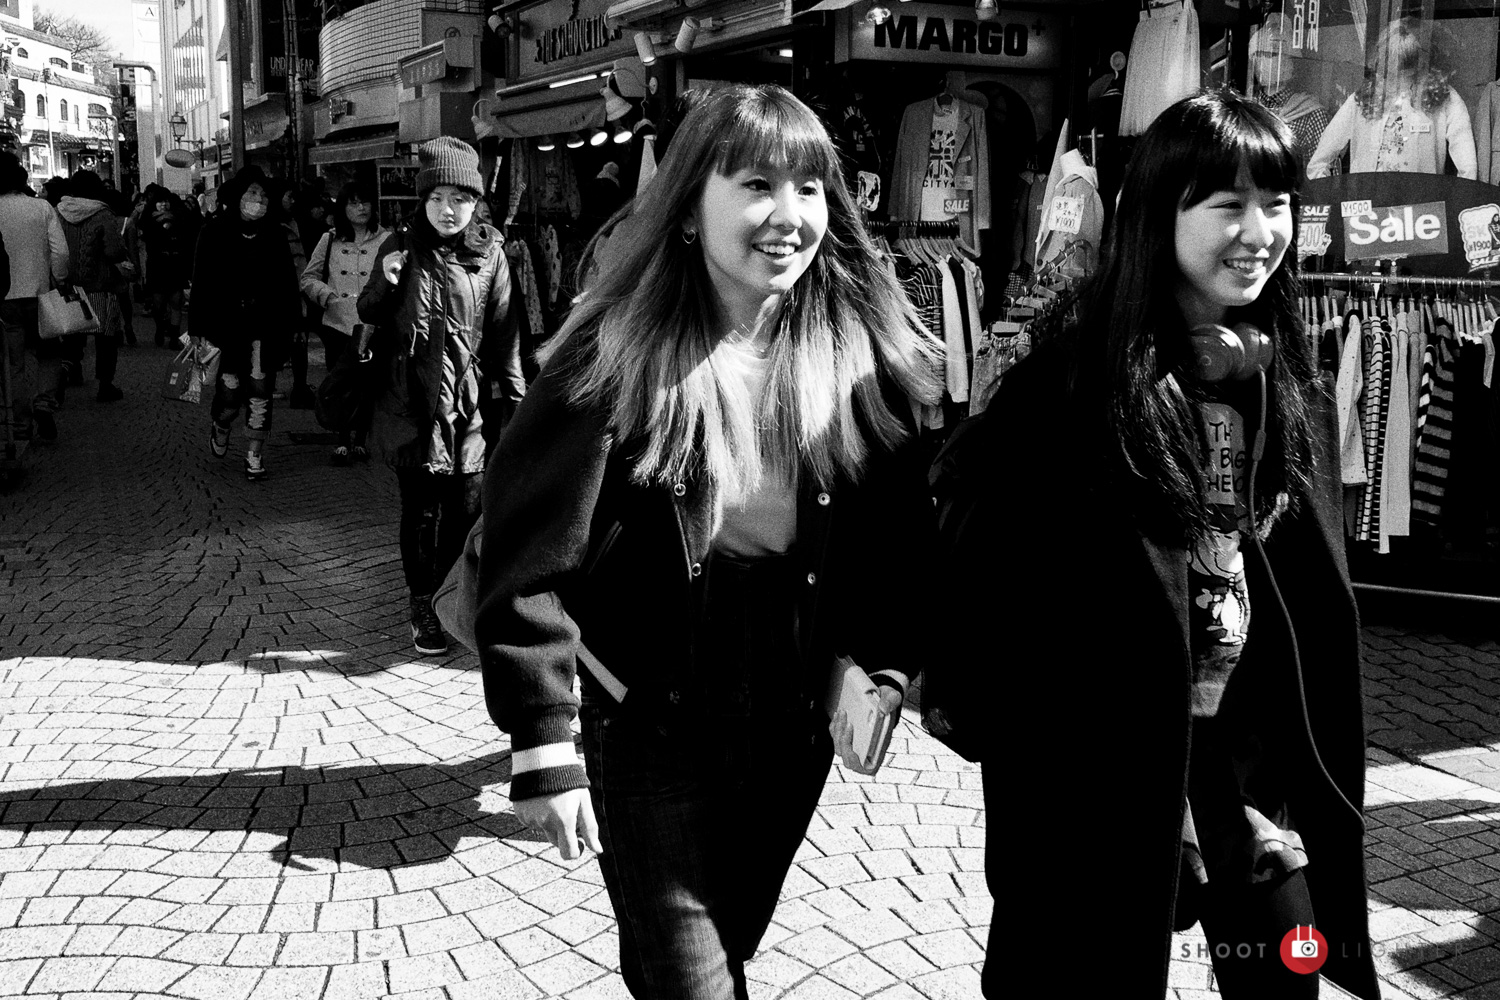 Harajuku, Tokyo - iPhone 6 Plus. Edited in Lightroom and Silver Efex Pro 2.